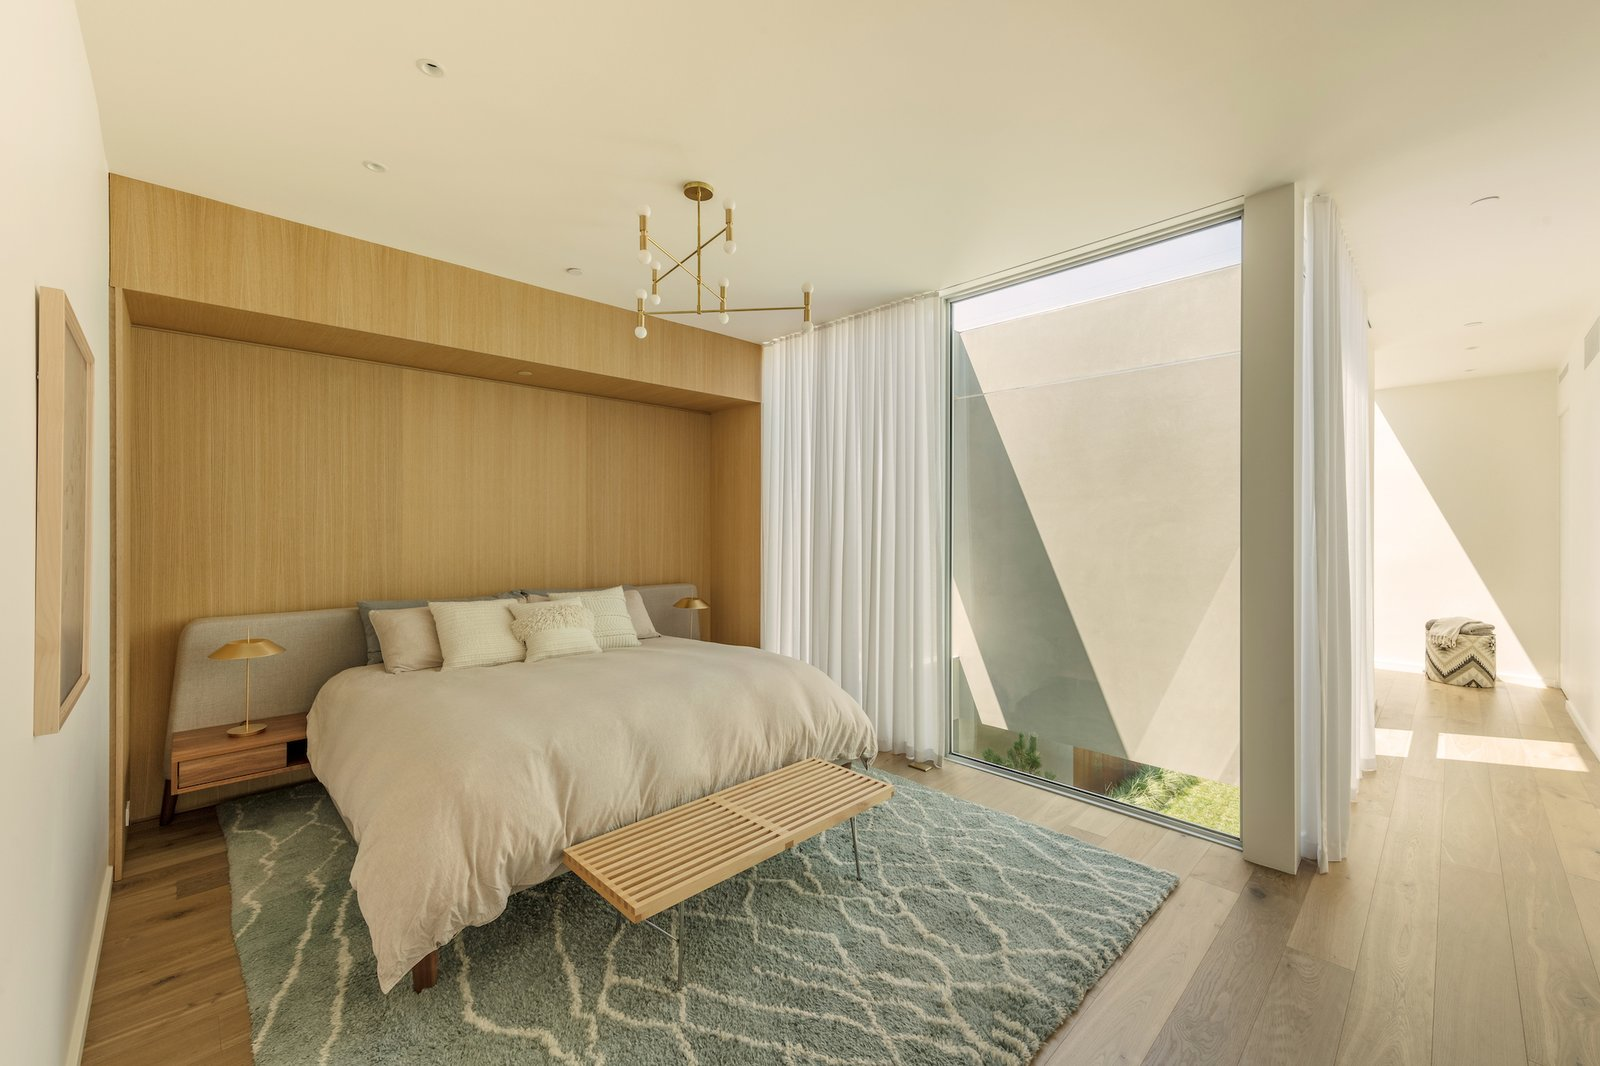 Master bedroom of Culver City Case Study House by Woods + Dangaran.